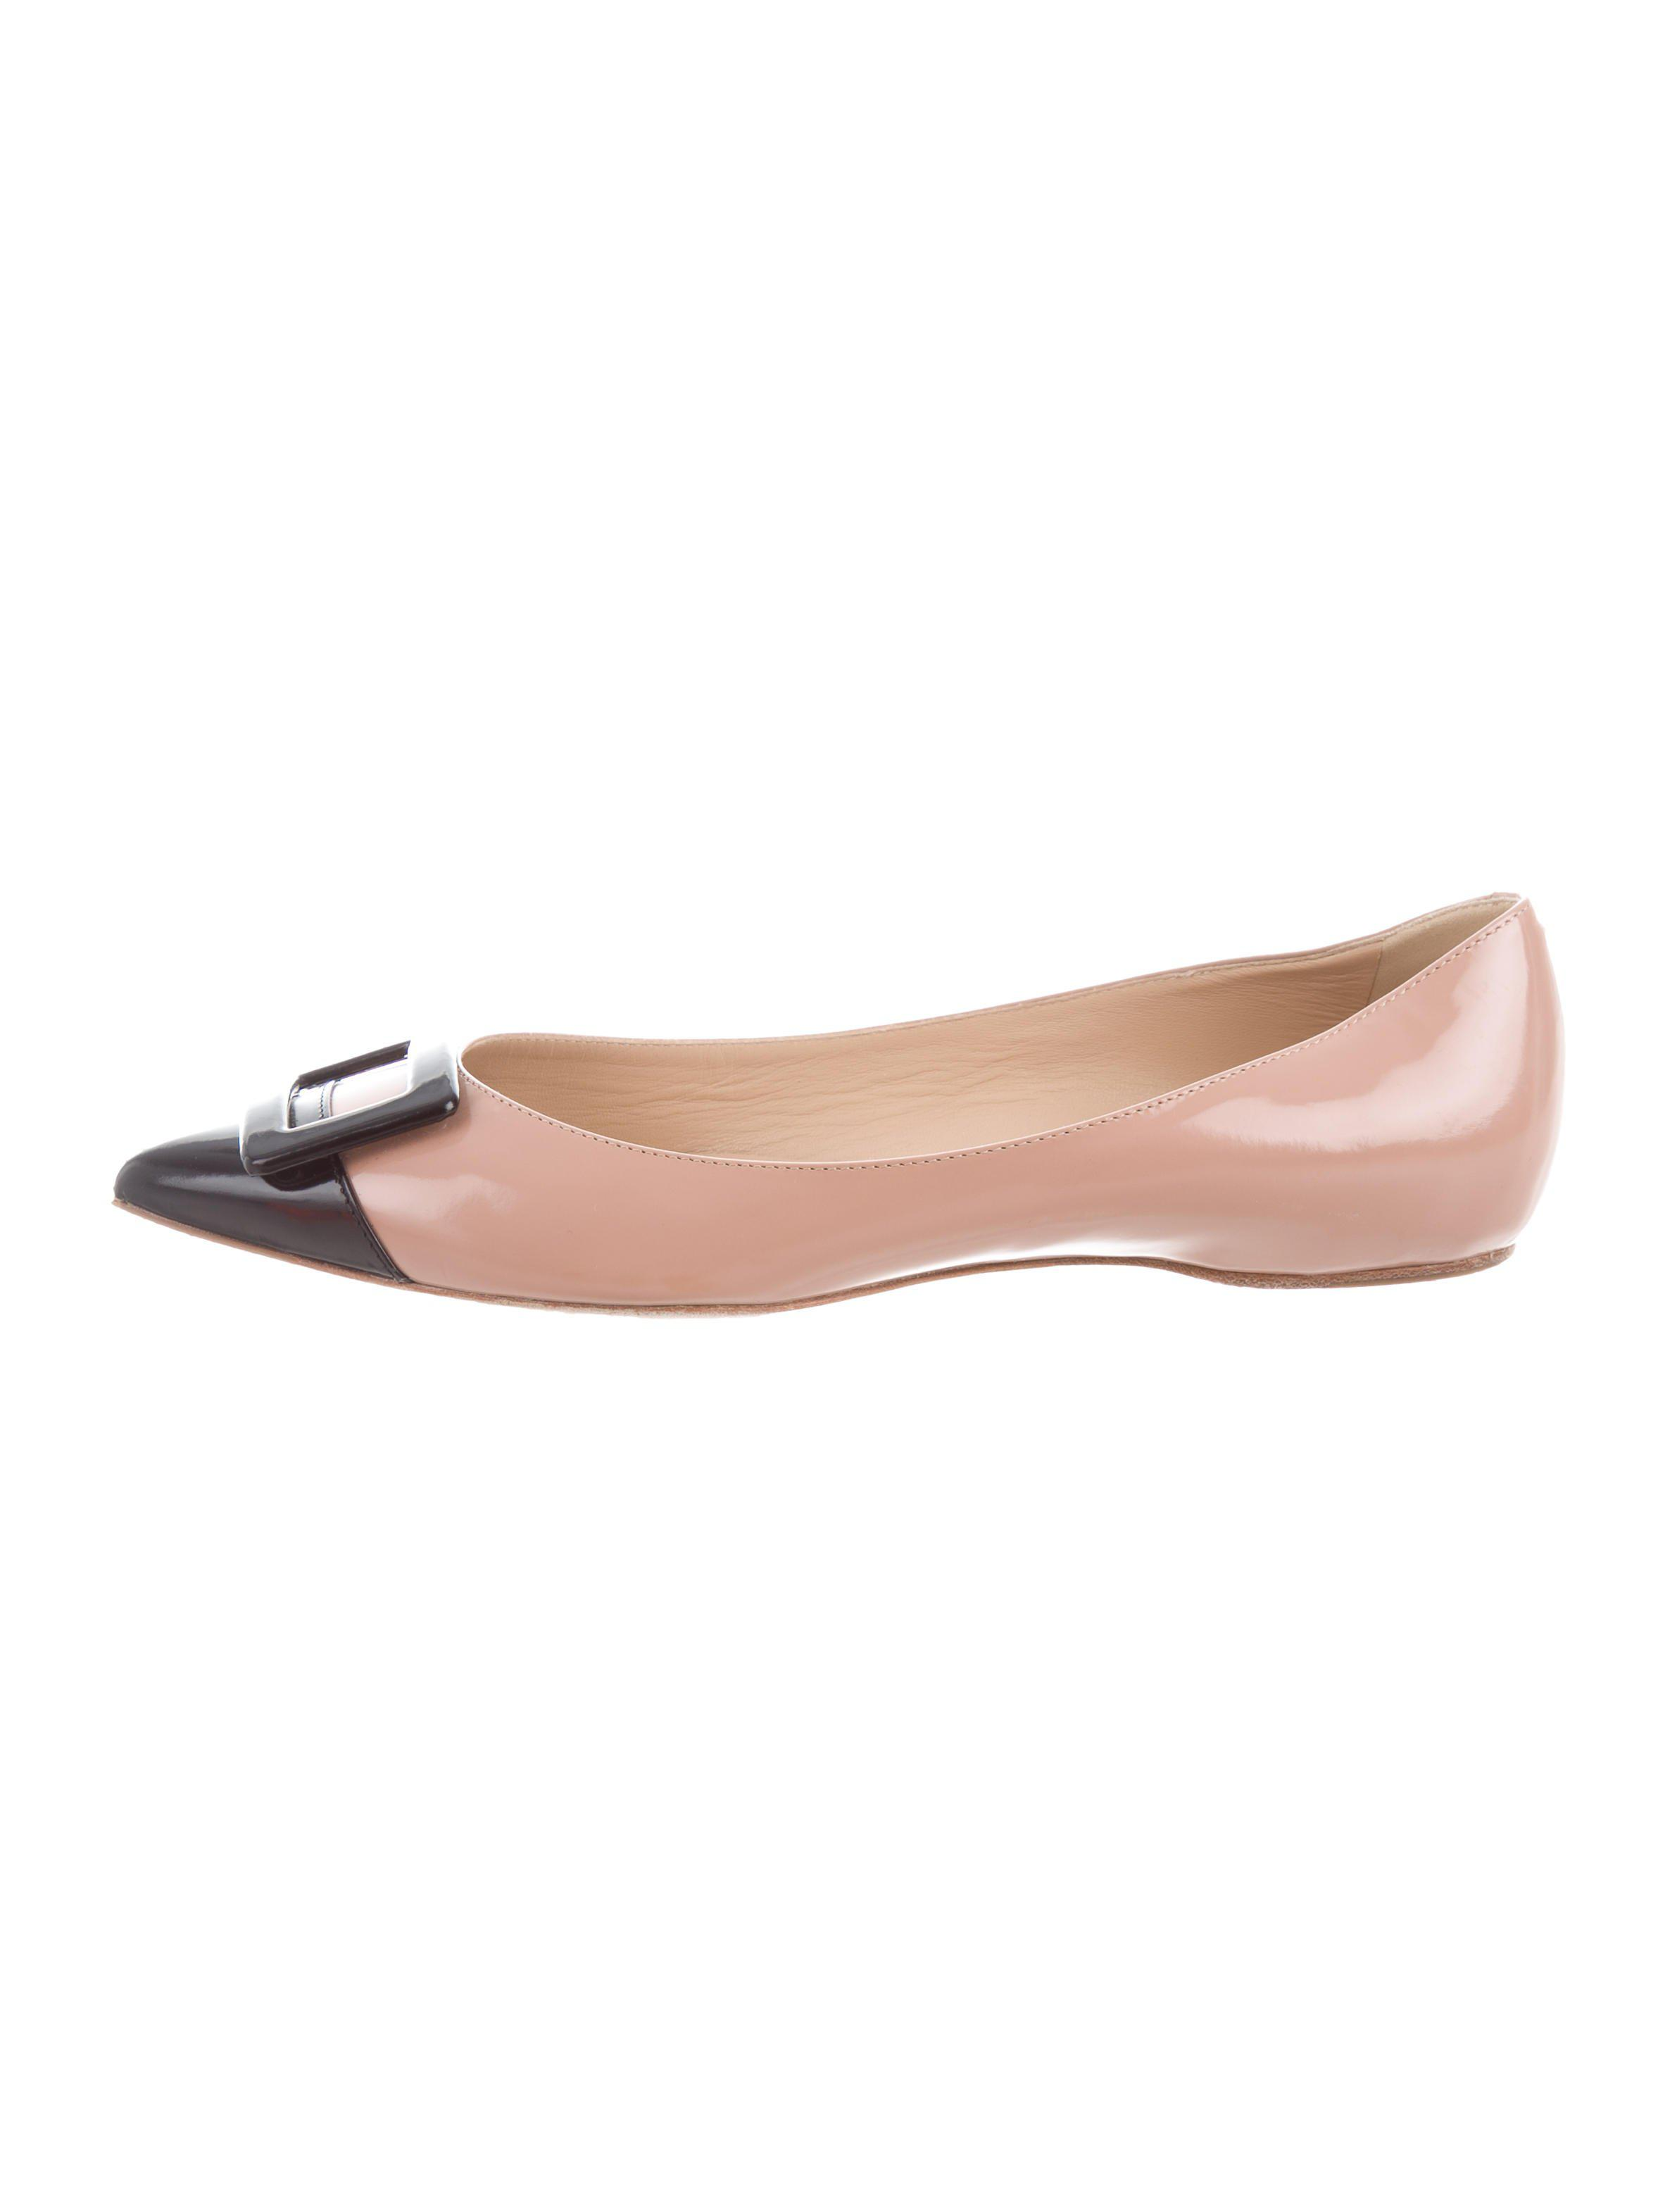 Roger Vivier Slingback Buckle-Accented Flats sast for sale 59RP88